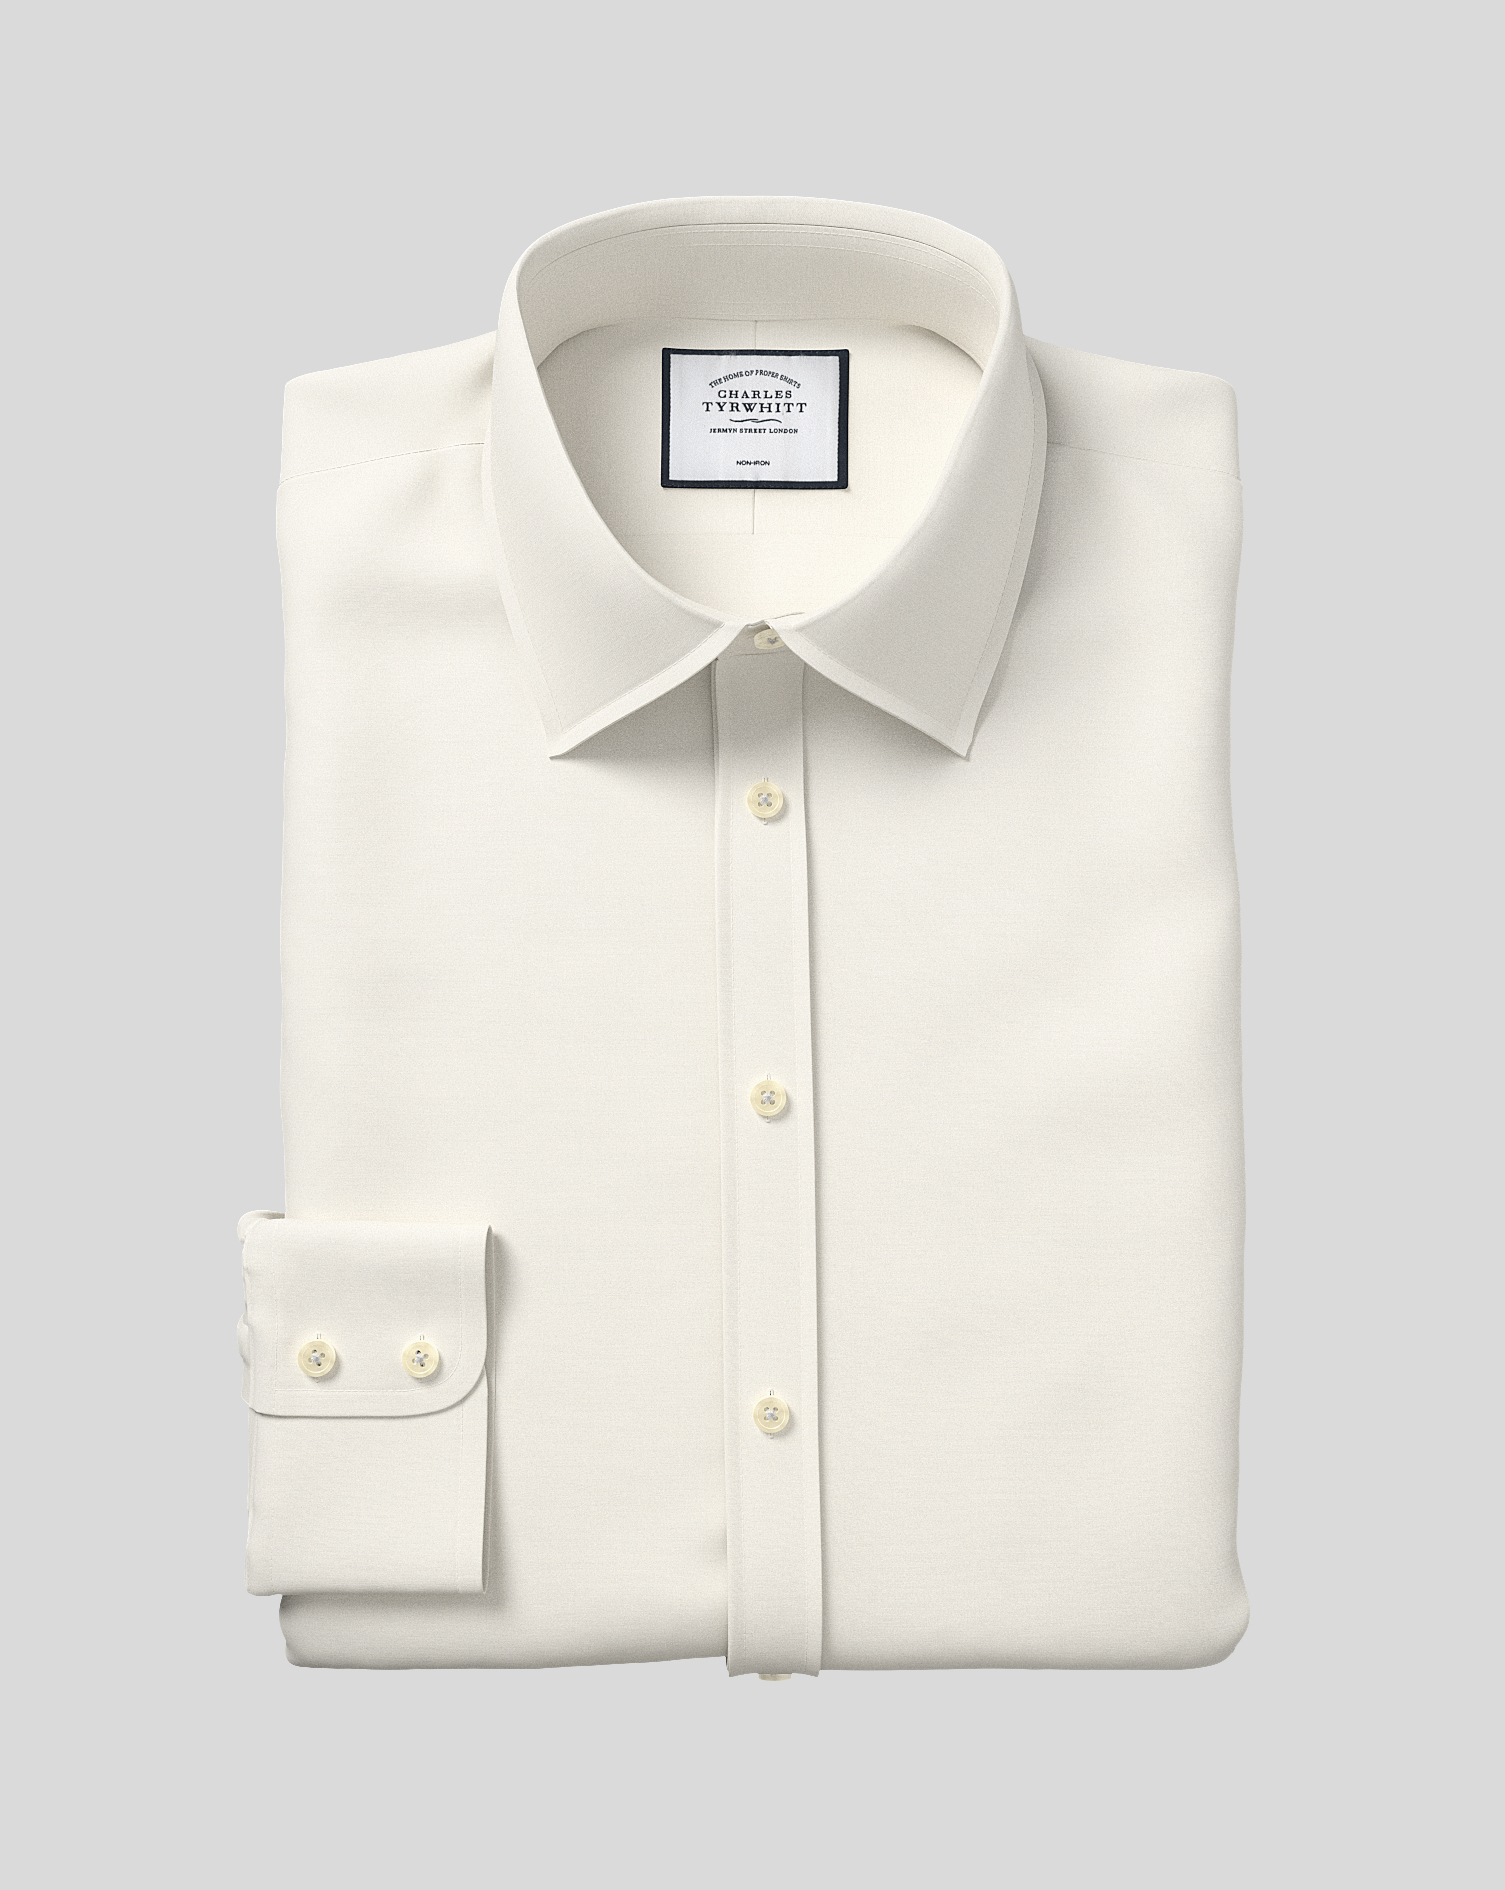 Slim Fit Cream Non-Iron Poplin Cotton Formal Shirt Single Cuff Size 16.5/35 by Charles Tyrwhitt